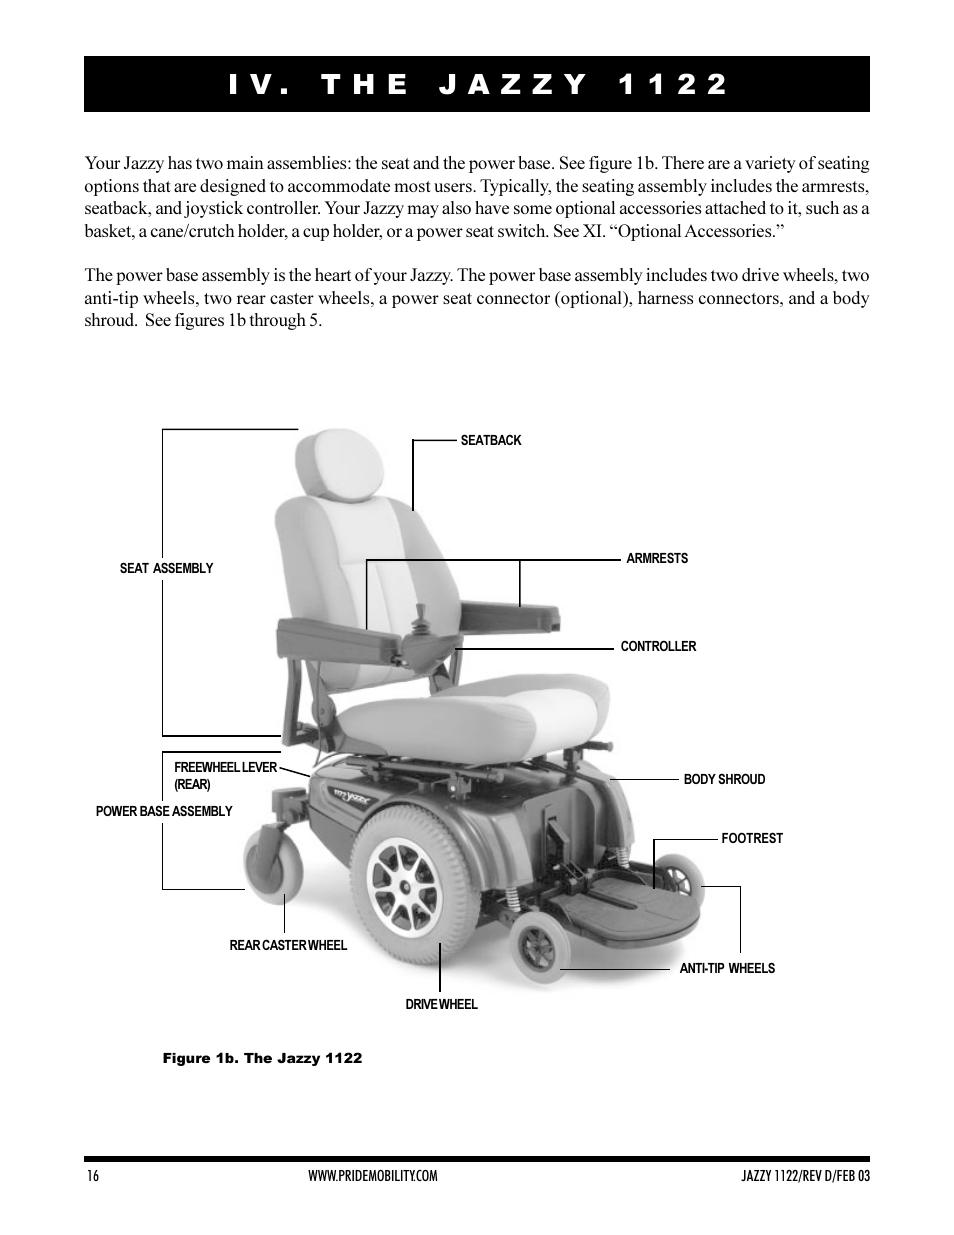 Pride Mobility Jazzy 1122 User Manual | Page 16 / 56 on pride mobility wiring diagram, mobility chair wiring diagram, wheelchair wiring diagram, pride scooter wiring diagram, pride lift chairs wiring diagram, mobility scooter wiring diagram, power scooter wiring diagram, shoprider power chair wiring diagram, go go scooter wiring diagram, invacare wiring diagram,